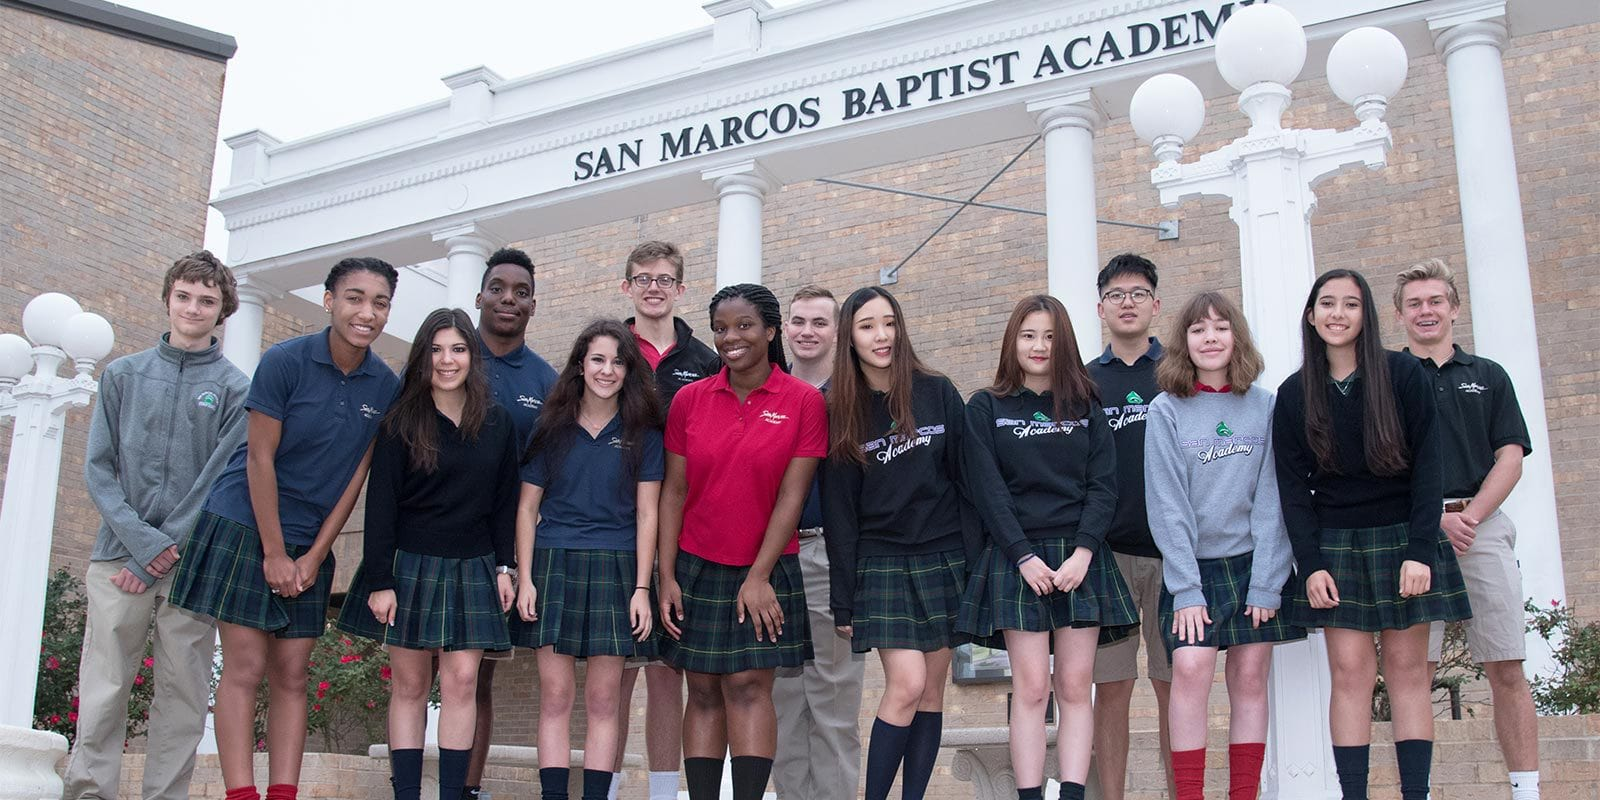 Students at San Marcos Academy Texas School